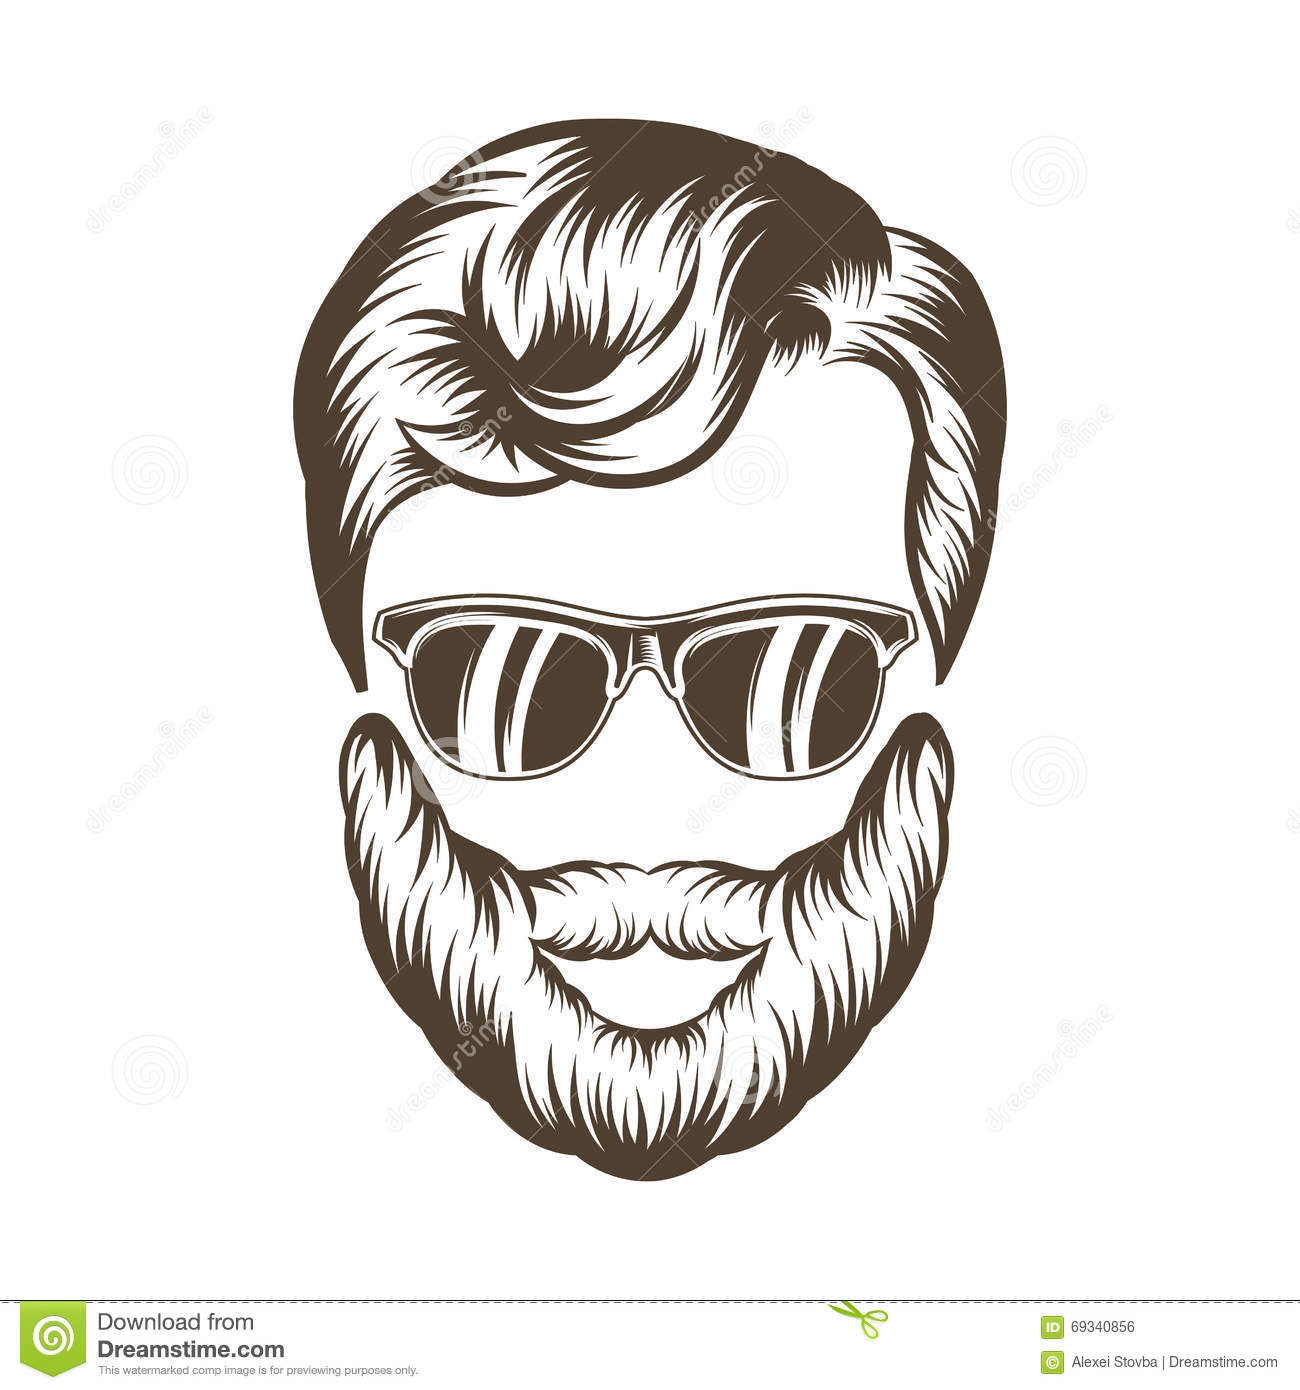 Hipster hair drawing